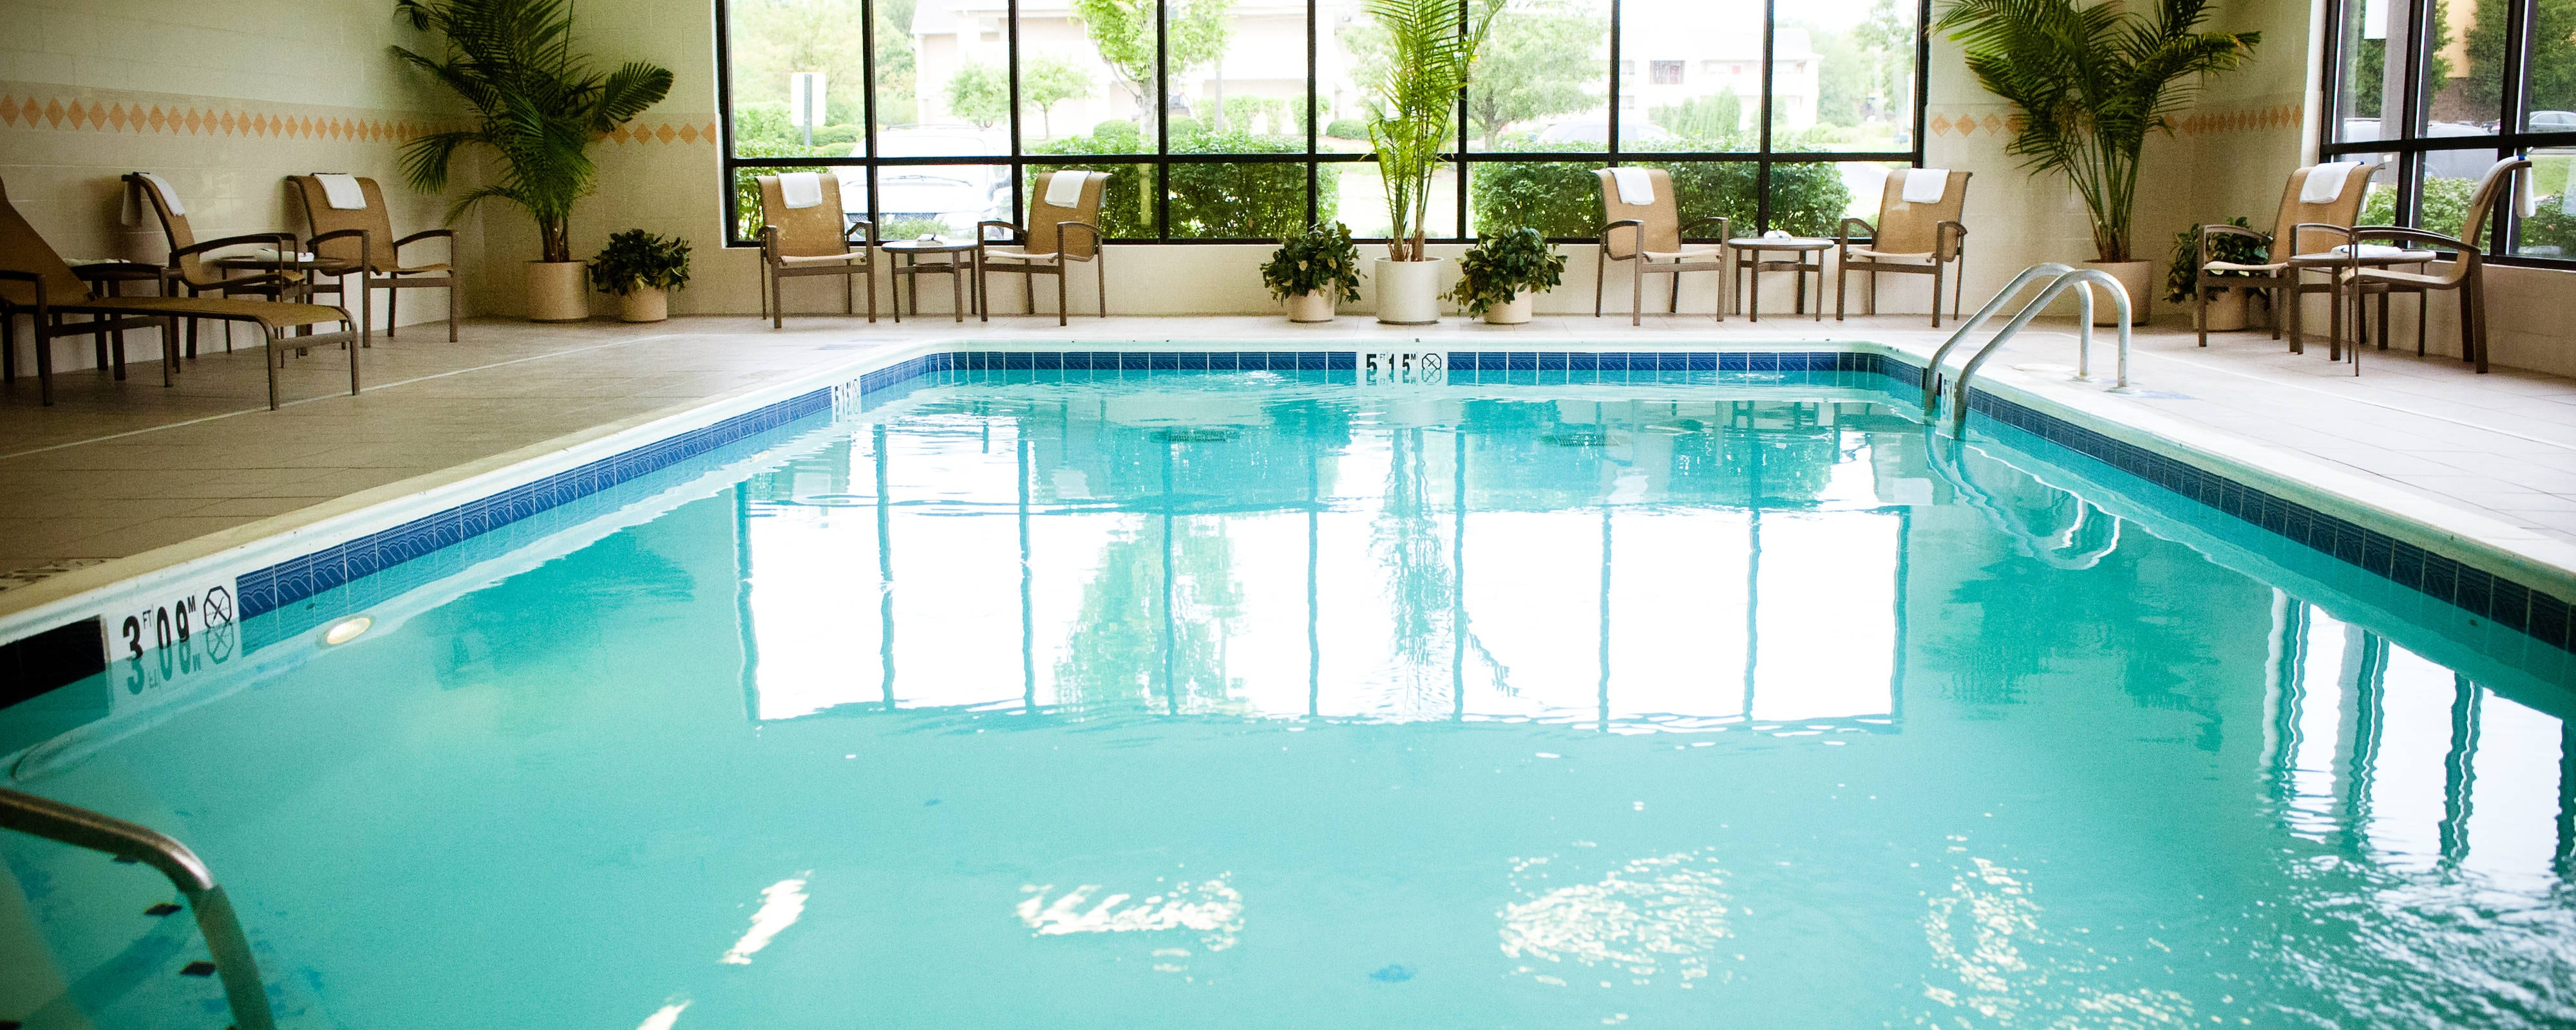 Fairfield Inn & Suites Cincinnati Indoor Pool